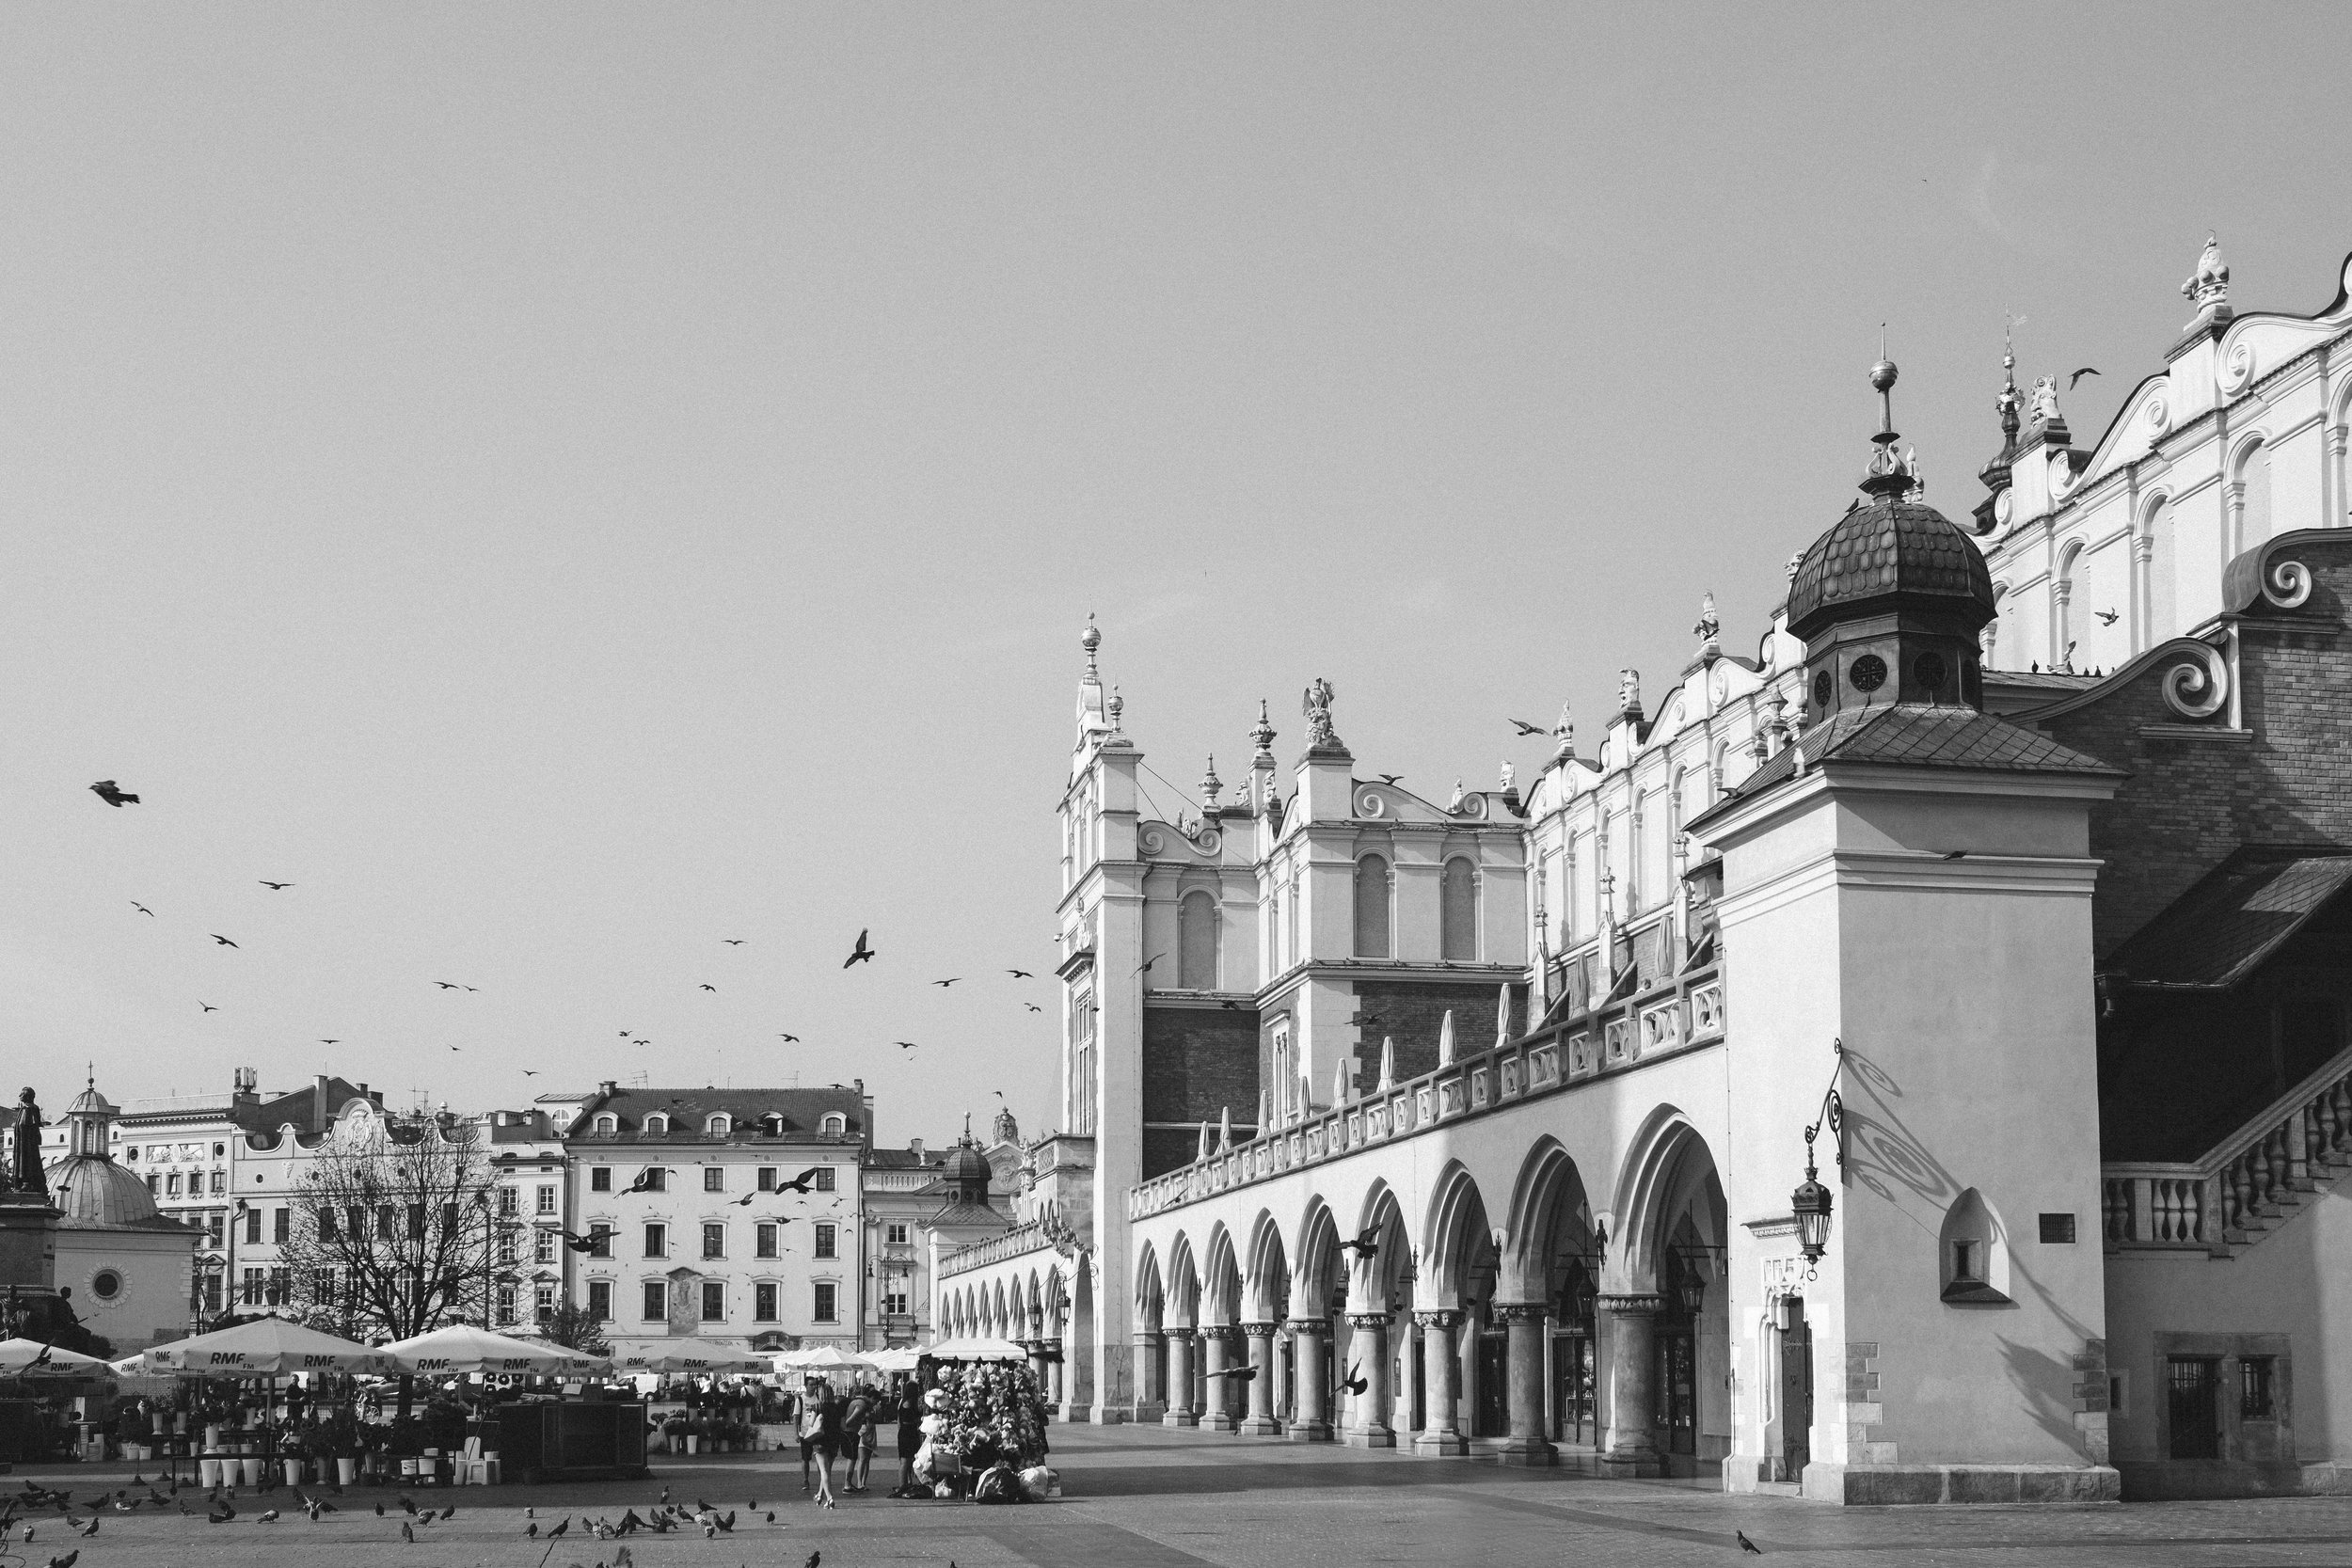 The Main Square and Cloth Hall in Old Town of Krakow Poland